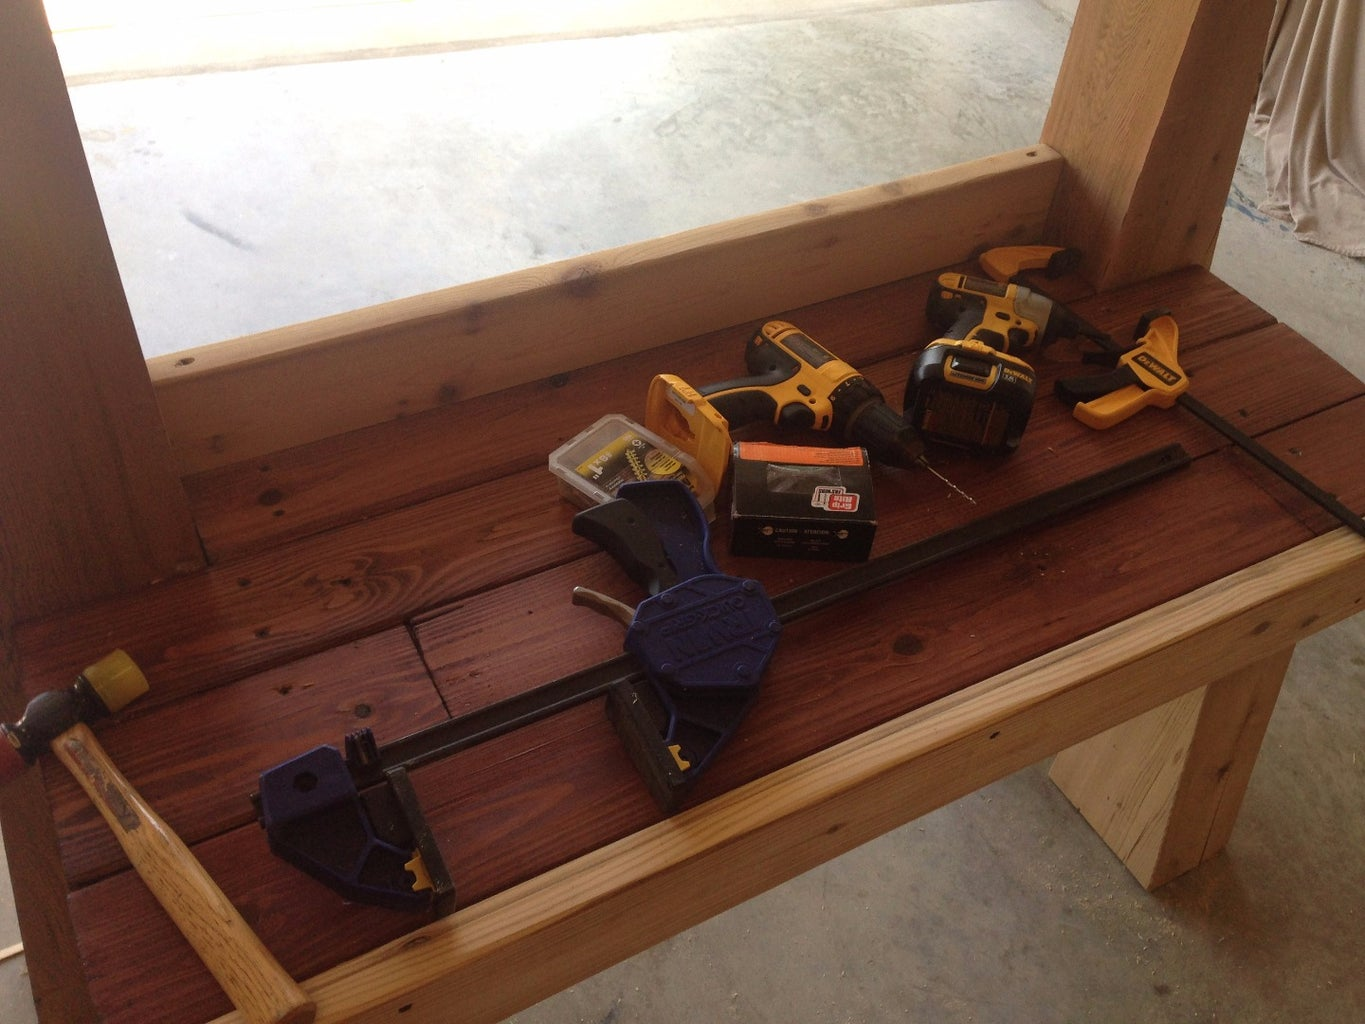 Install the T&G Top and Trim Pieces